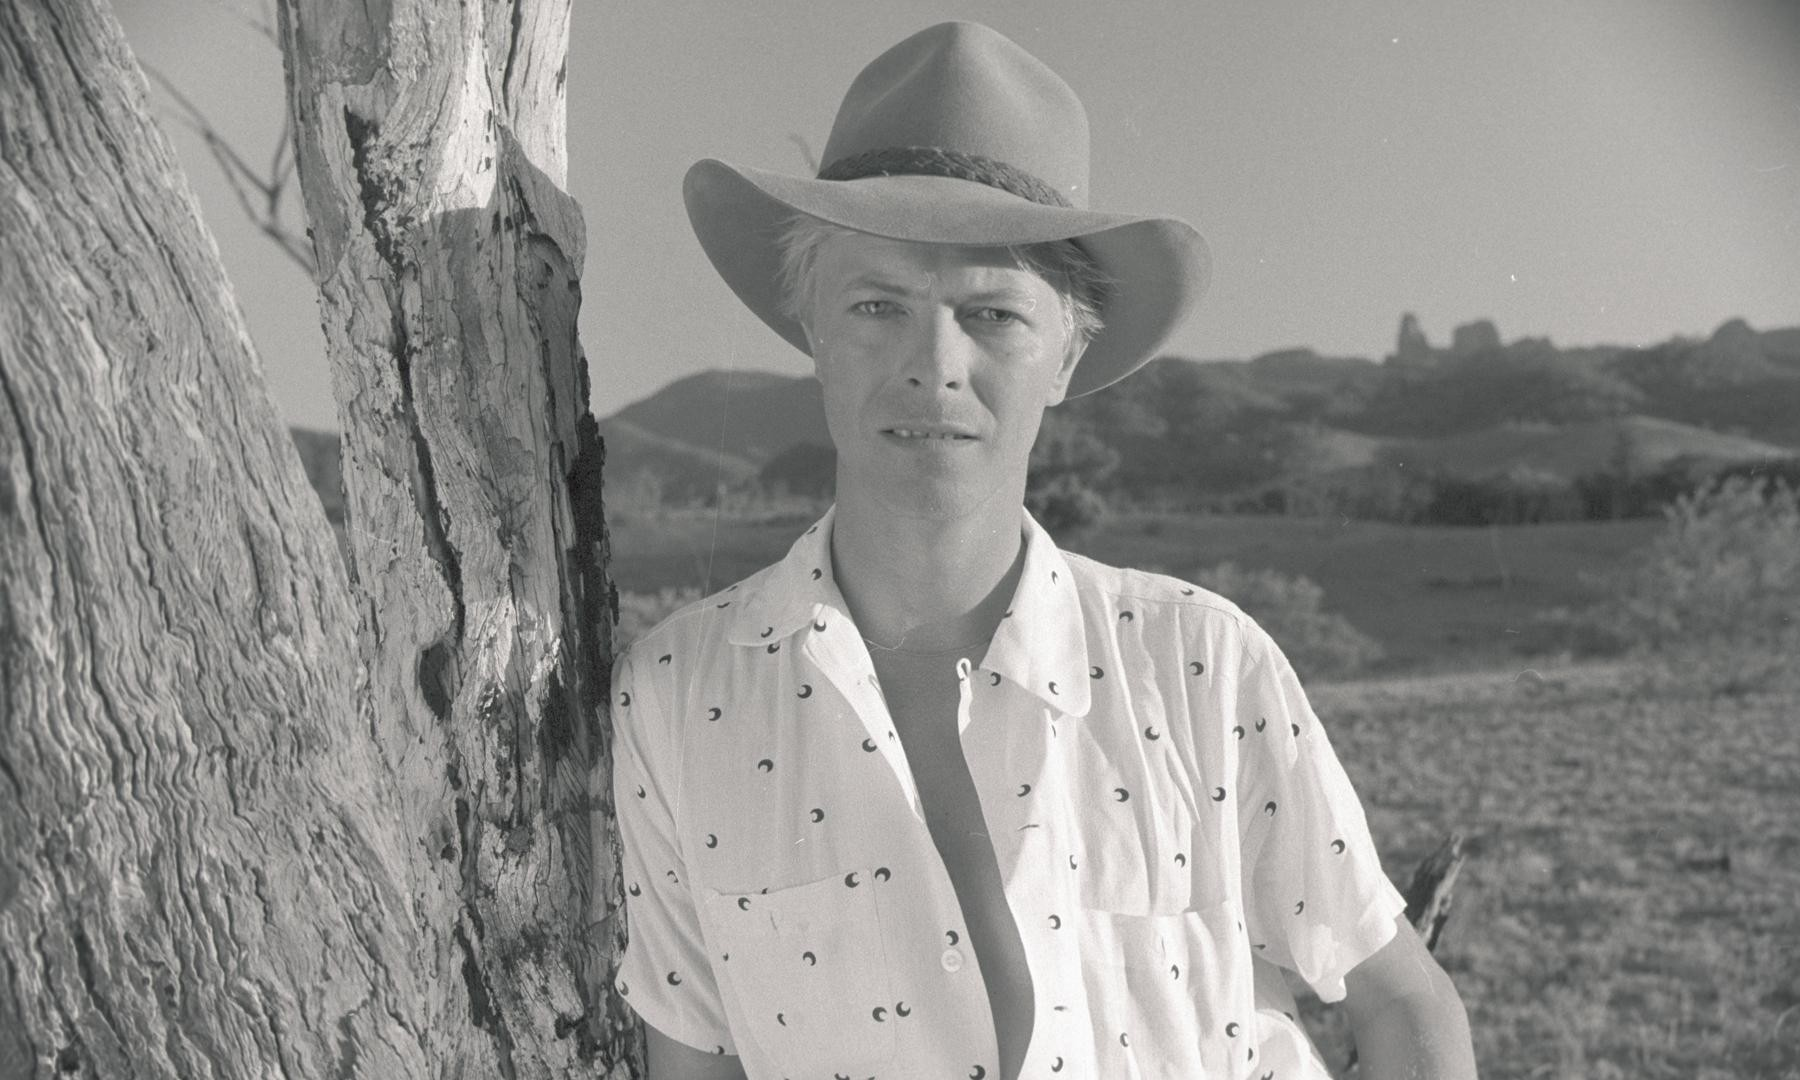 David Bowie in Australia: an alien from another planet, singing for this one